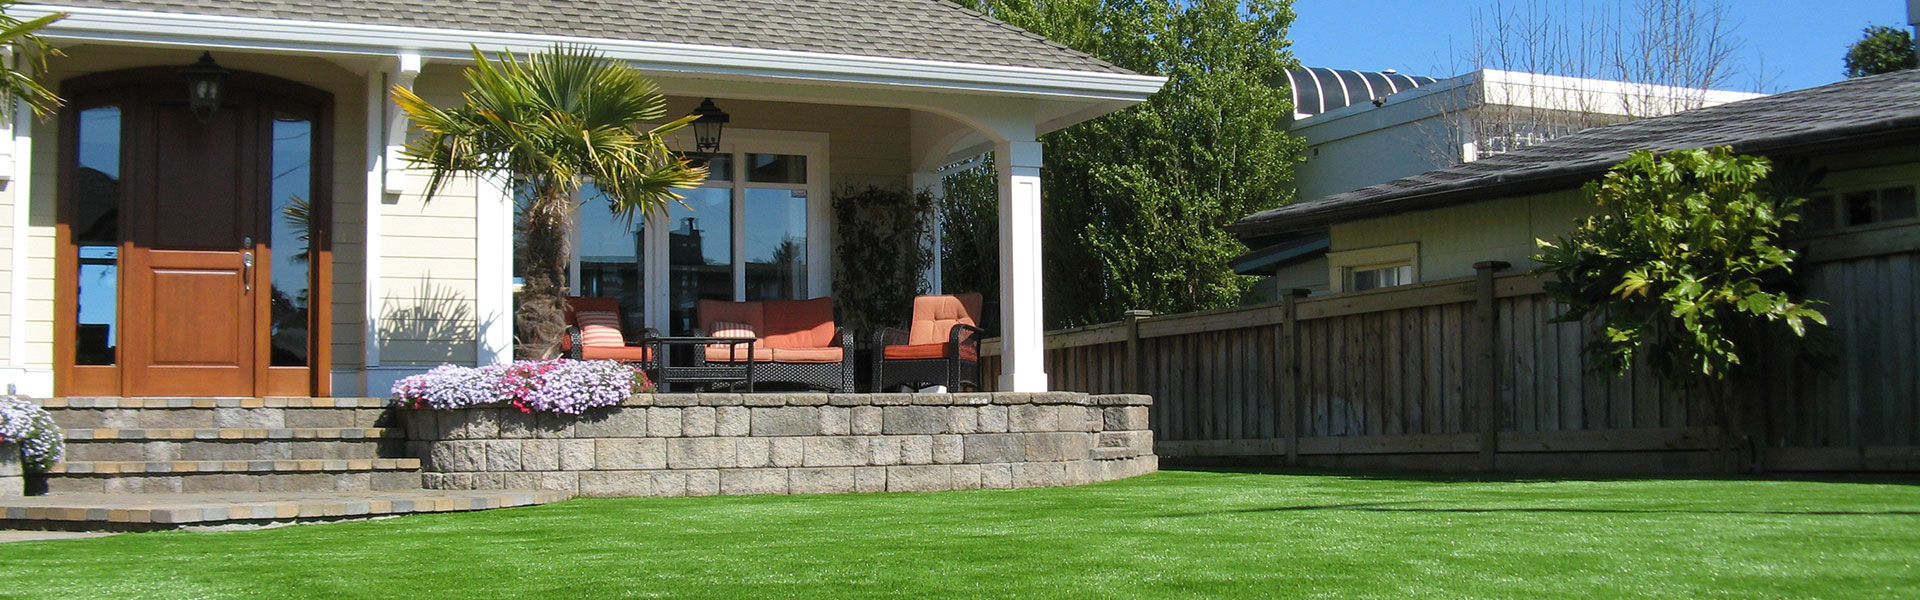 artificial turf installed in front yard of house porch